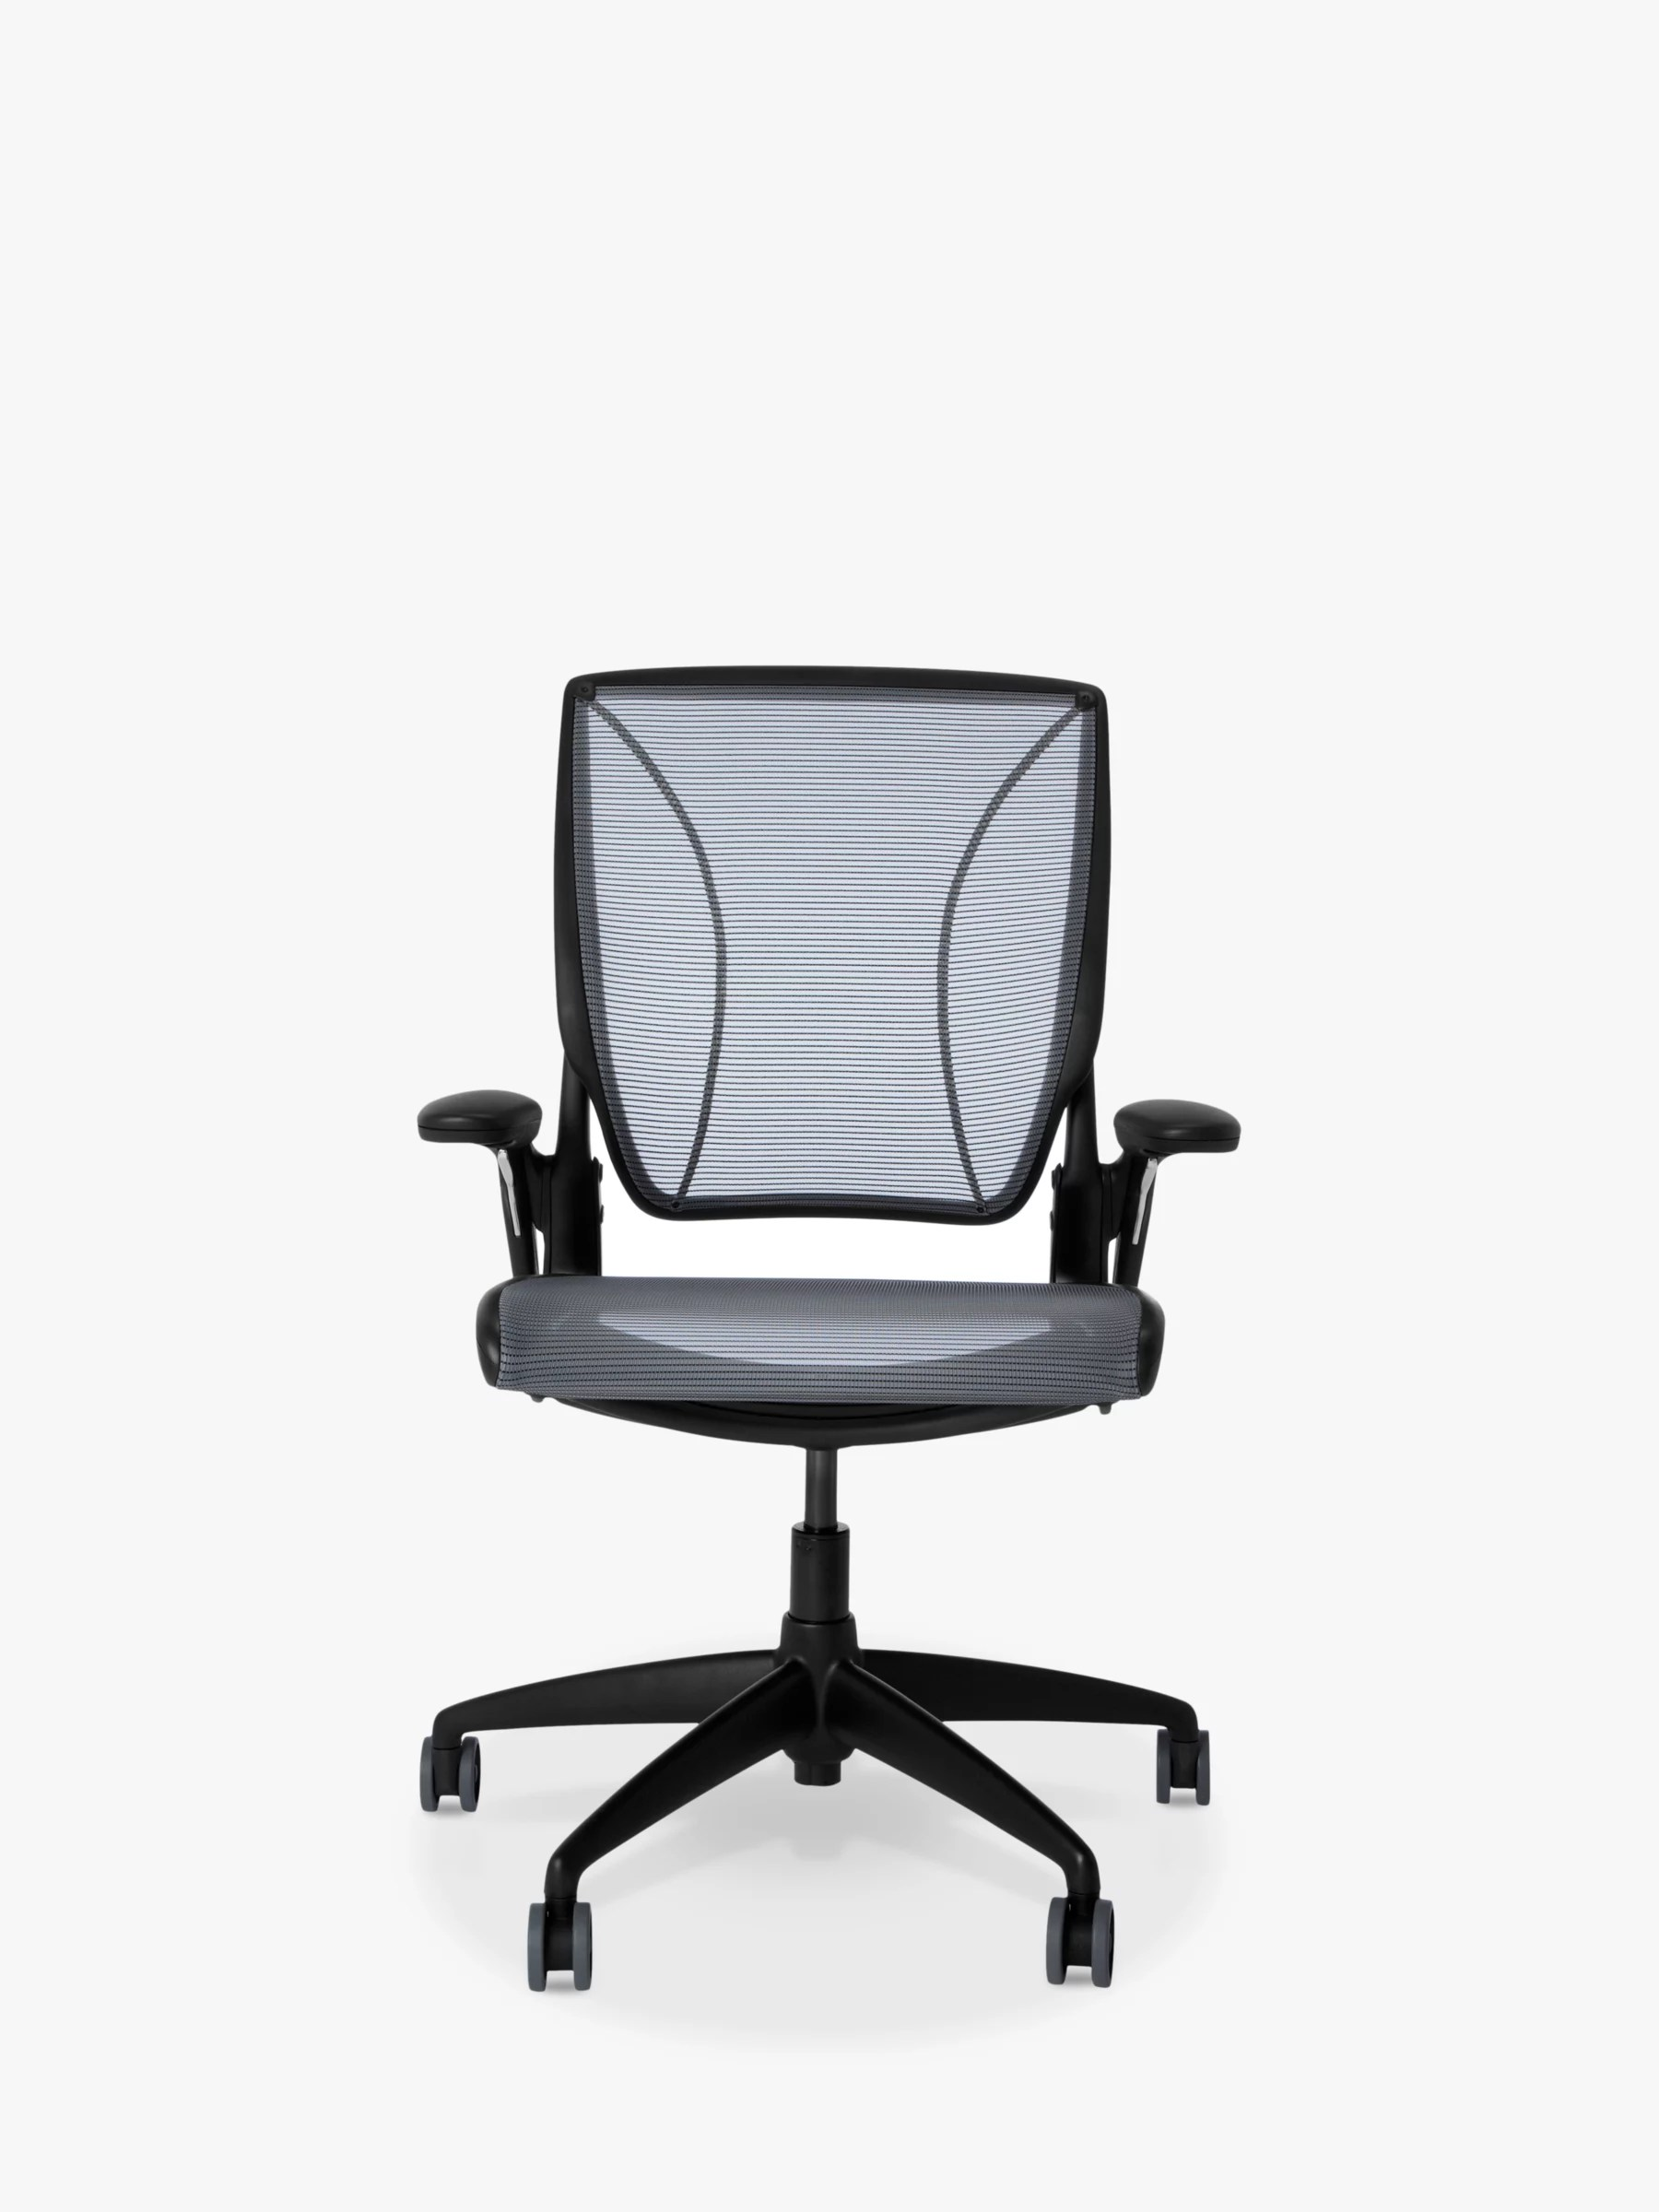 Humanscale Diffrient World Chair Humanscale Diffrient World Office Chair Black At John Lewis